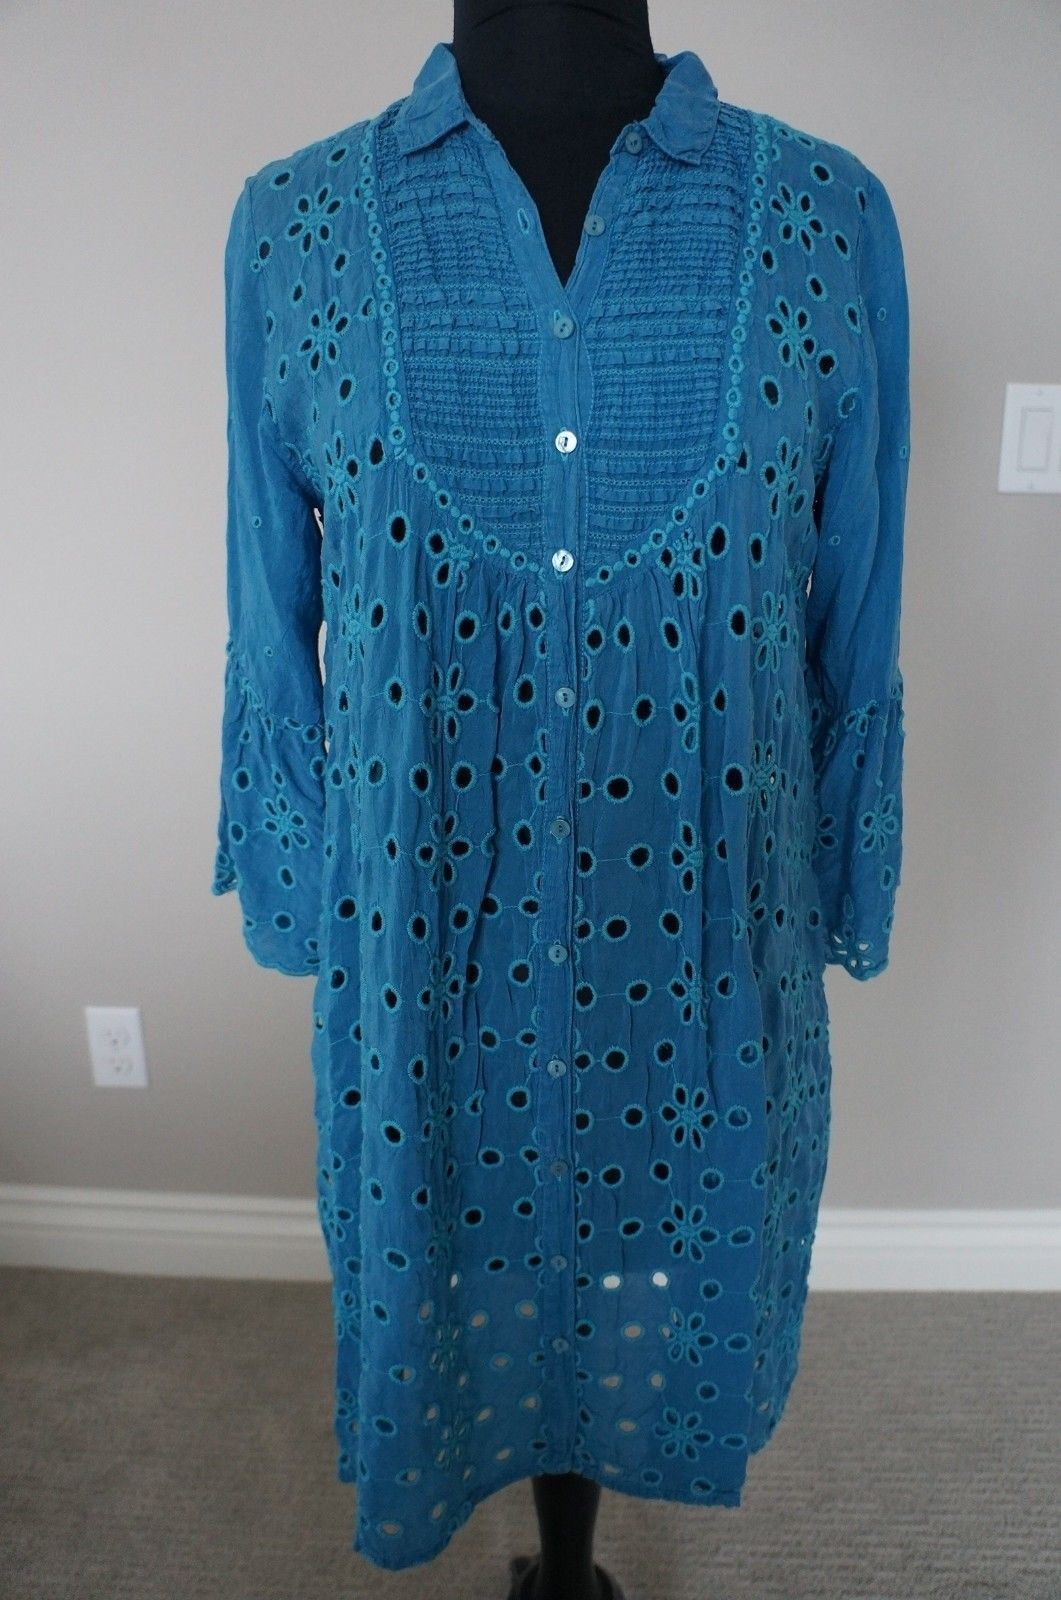 NEW Johnny Was Rayon Eyelet EmbroideROT Isabelle Tunic Top Blouse Dress Blau S